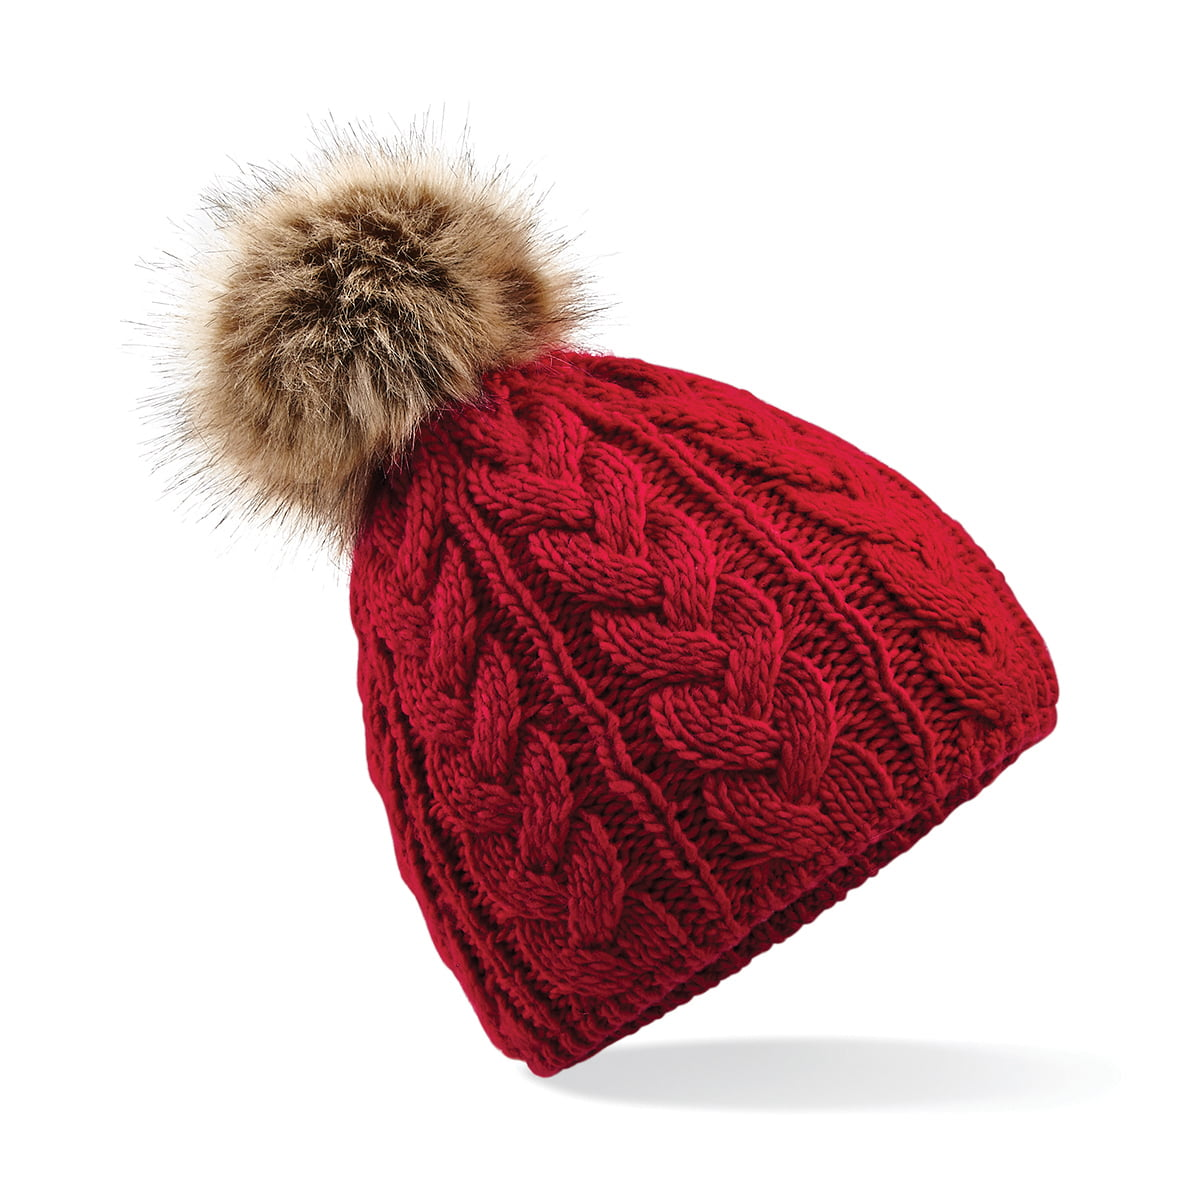 703530b9f90 Freedom Embroidery » Cable Knit Pom Pom Hat